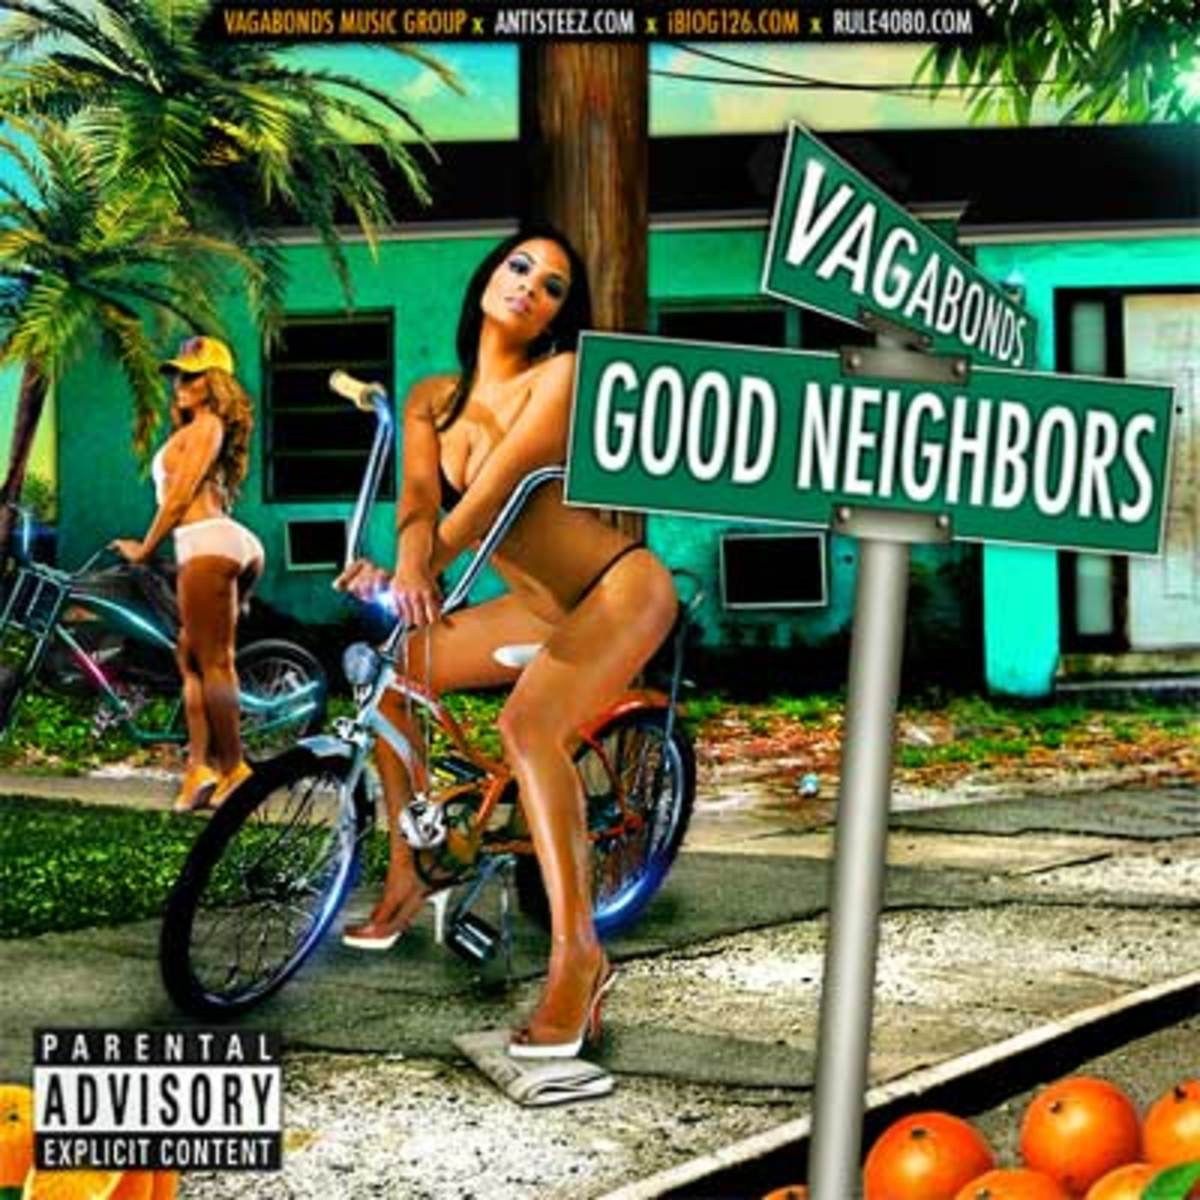 vagabonds-neighbors-front.jpg